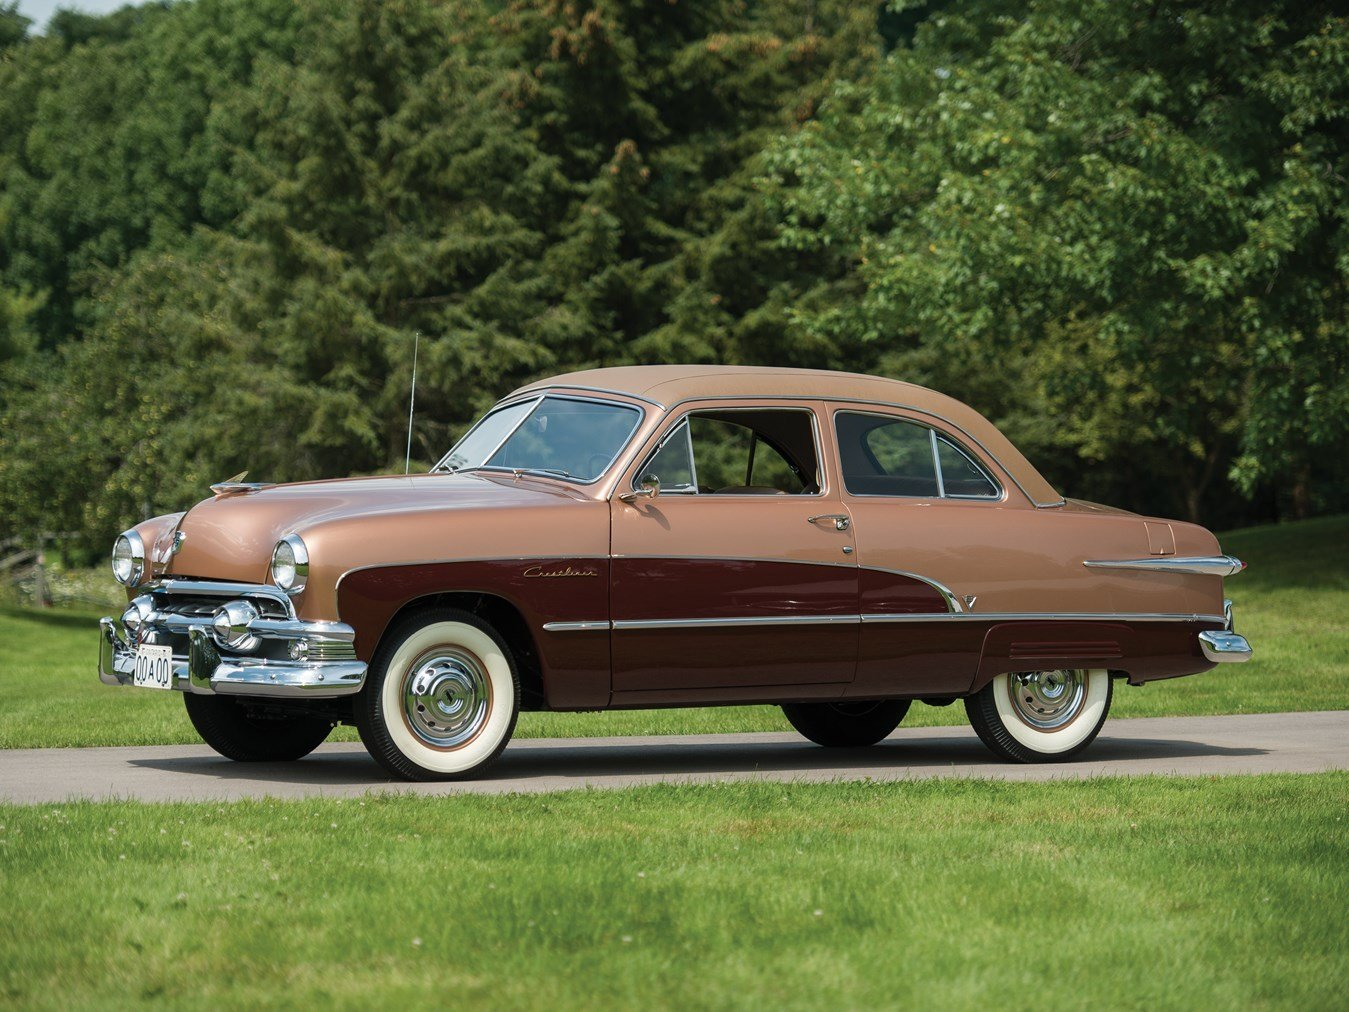 Latest Ford Custom Deluxe Crestliner 1951 0470Ch51 41981 Hershey Free Download Original 1024 x 768